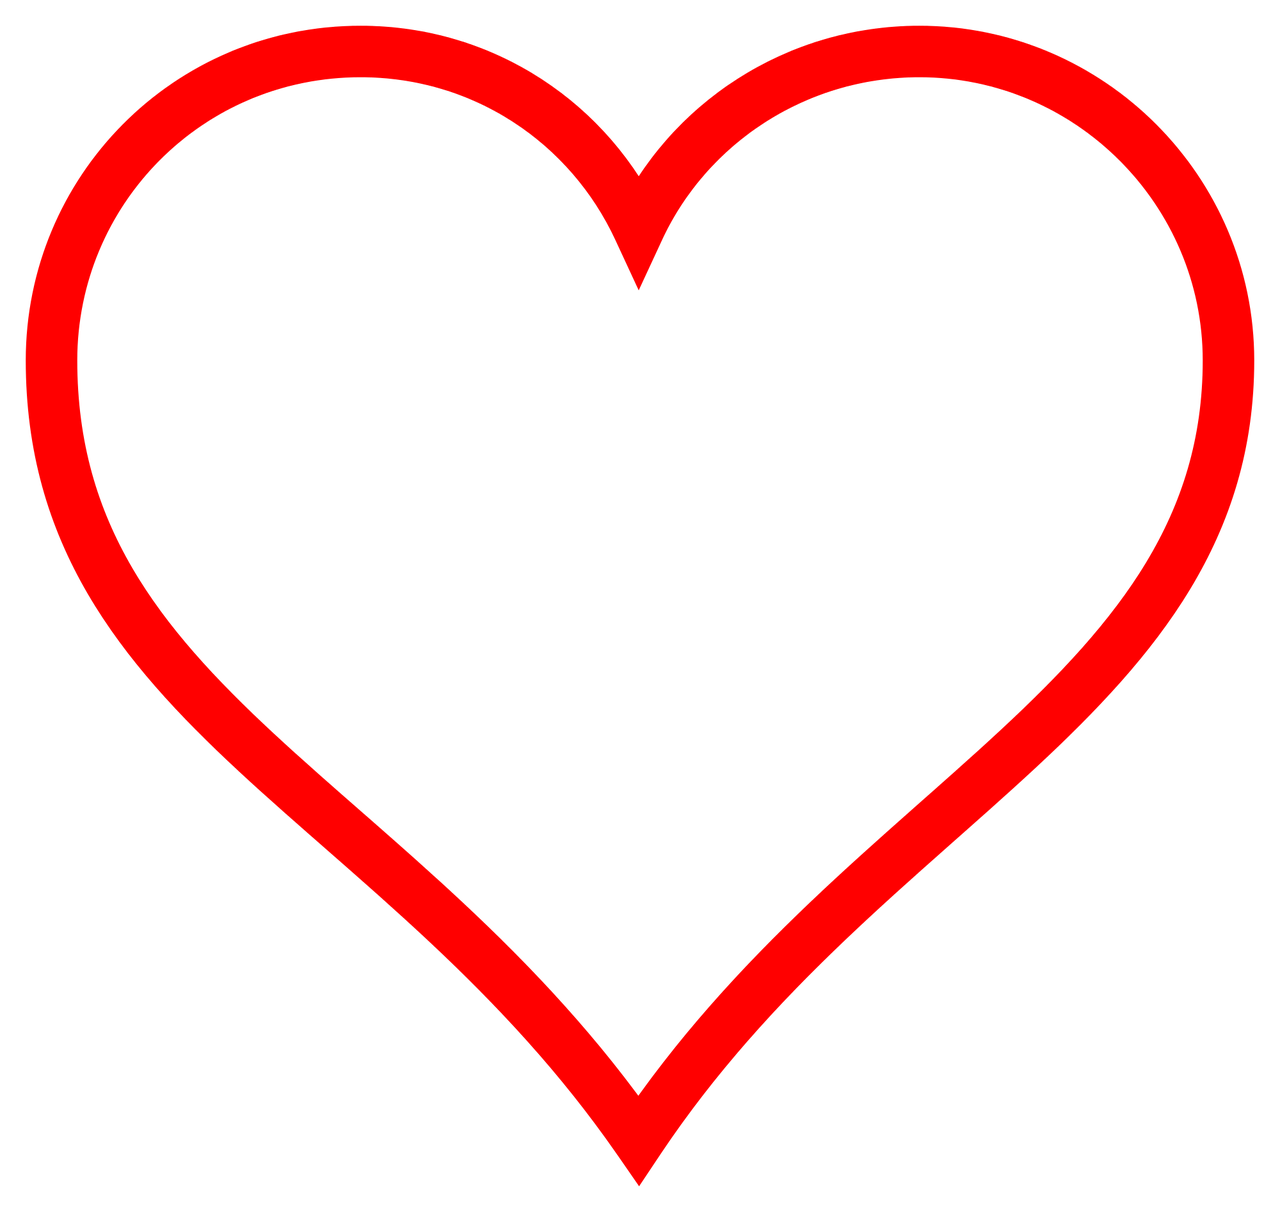 Red transparent png stickpng. Clipart heart simple